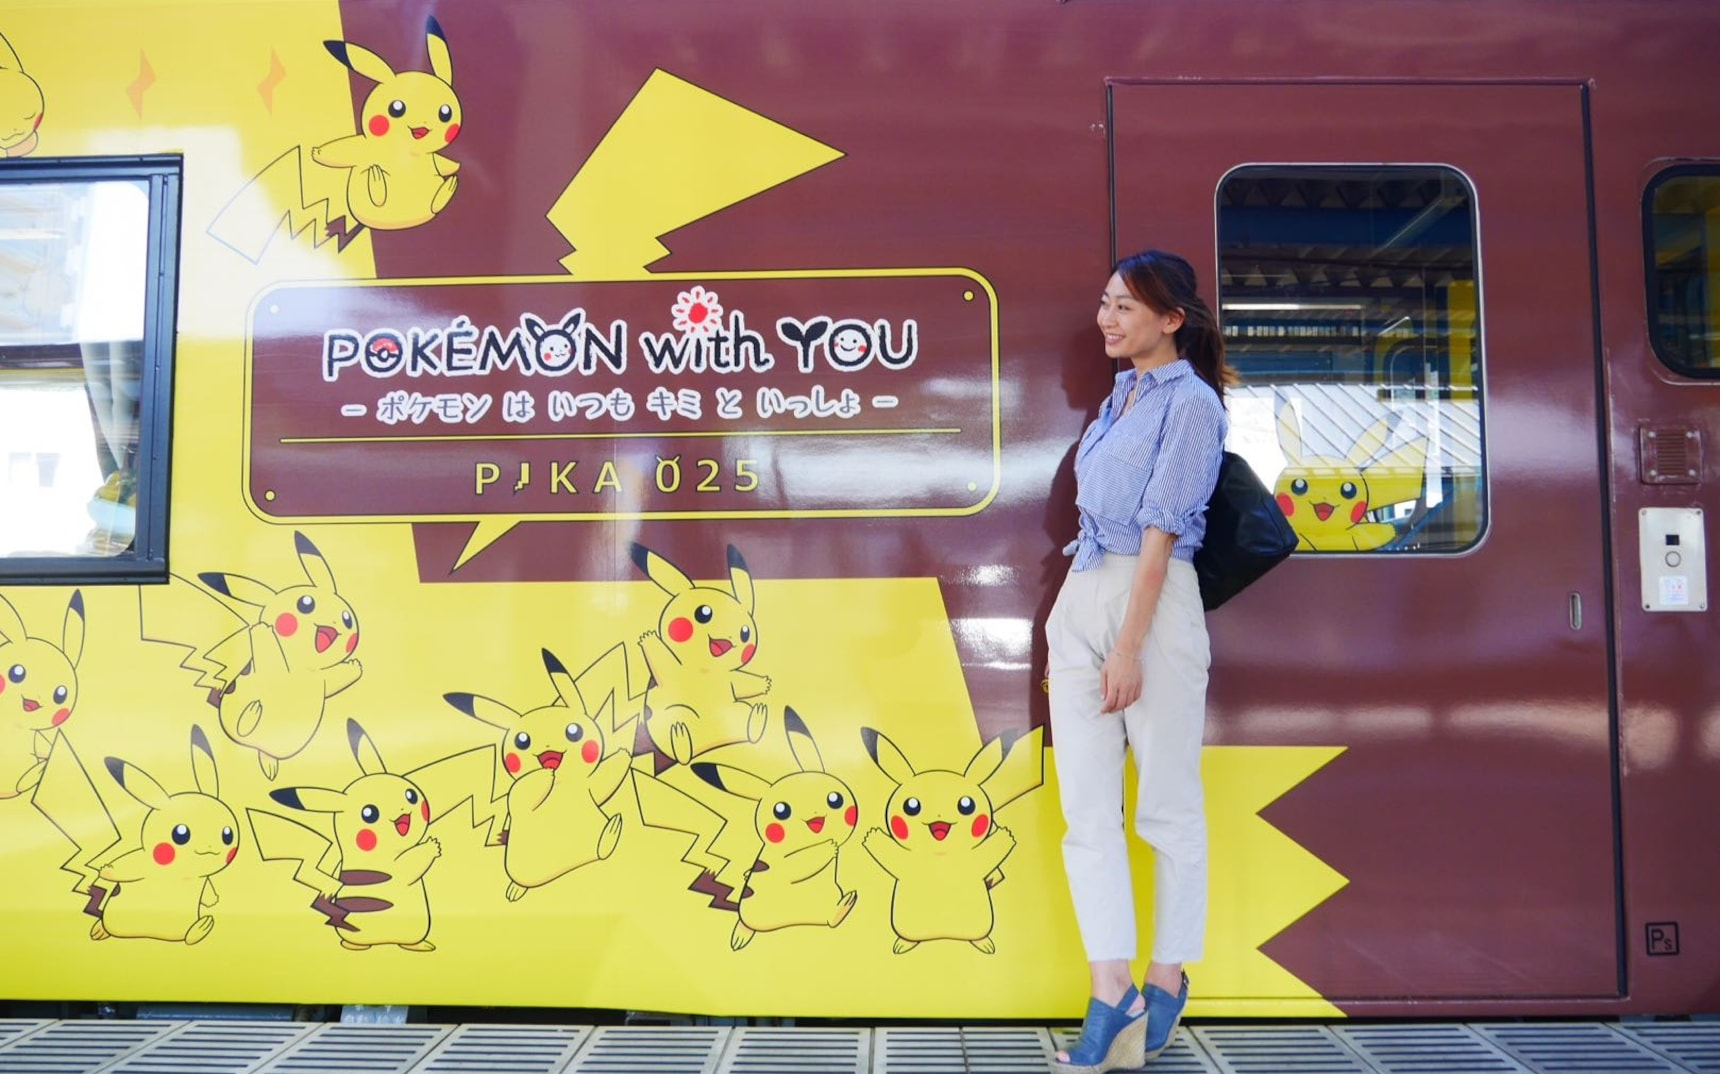 All Aboard the Pikachu Train!